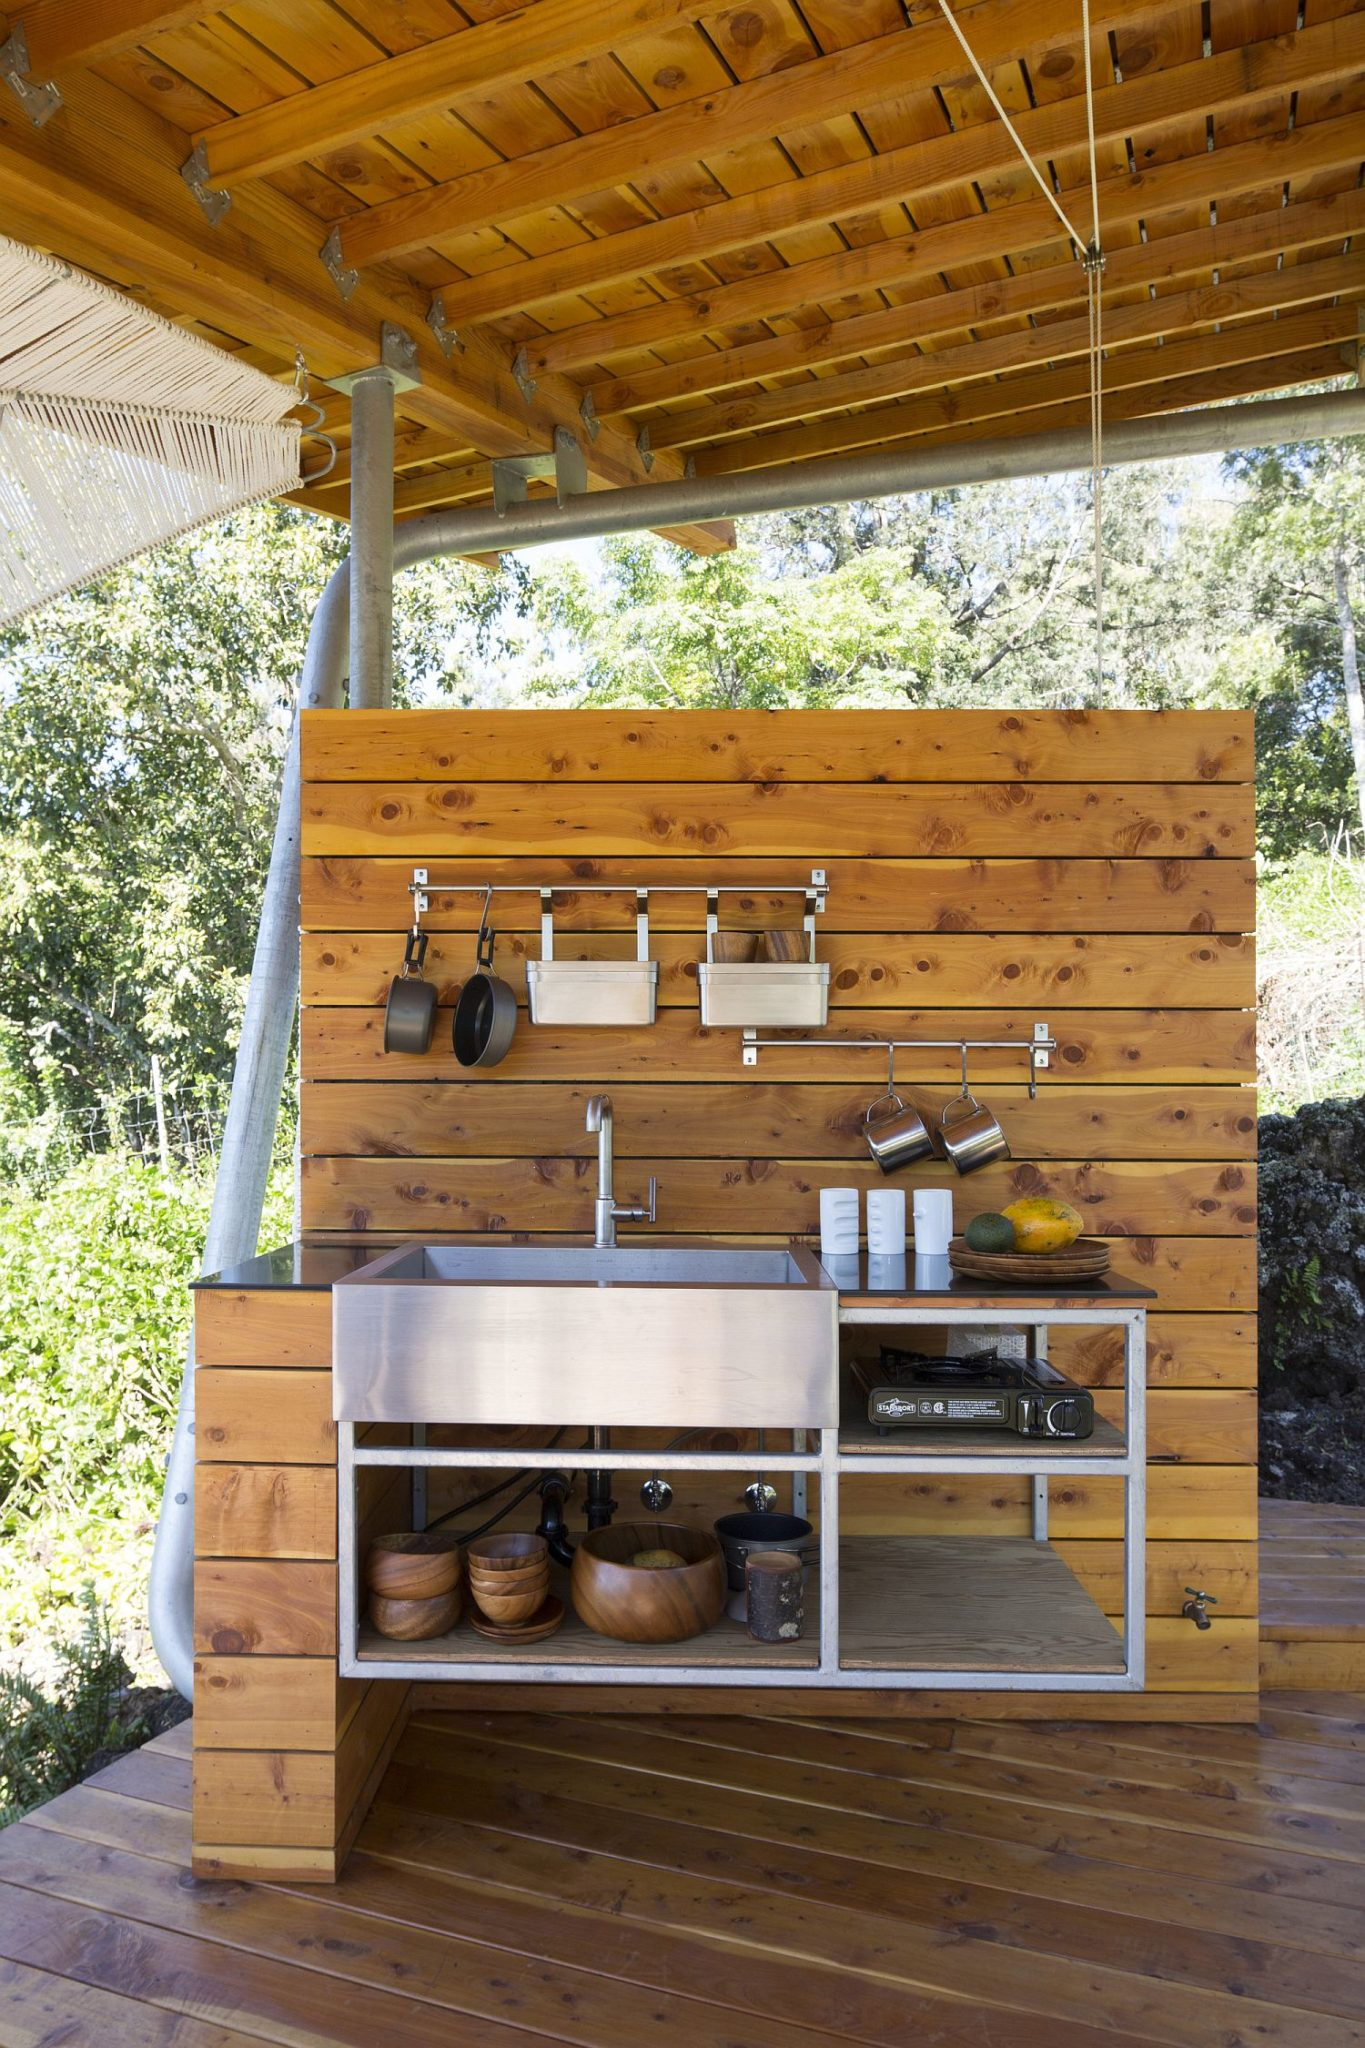 Covered-pavilion-with-outdoor-kitchen-creates-a-connect-with-the-landscape